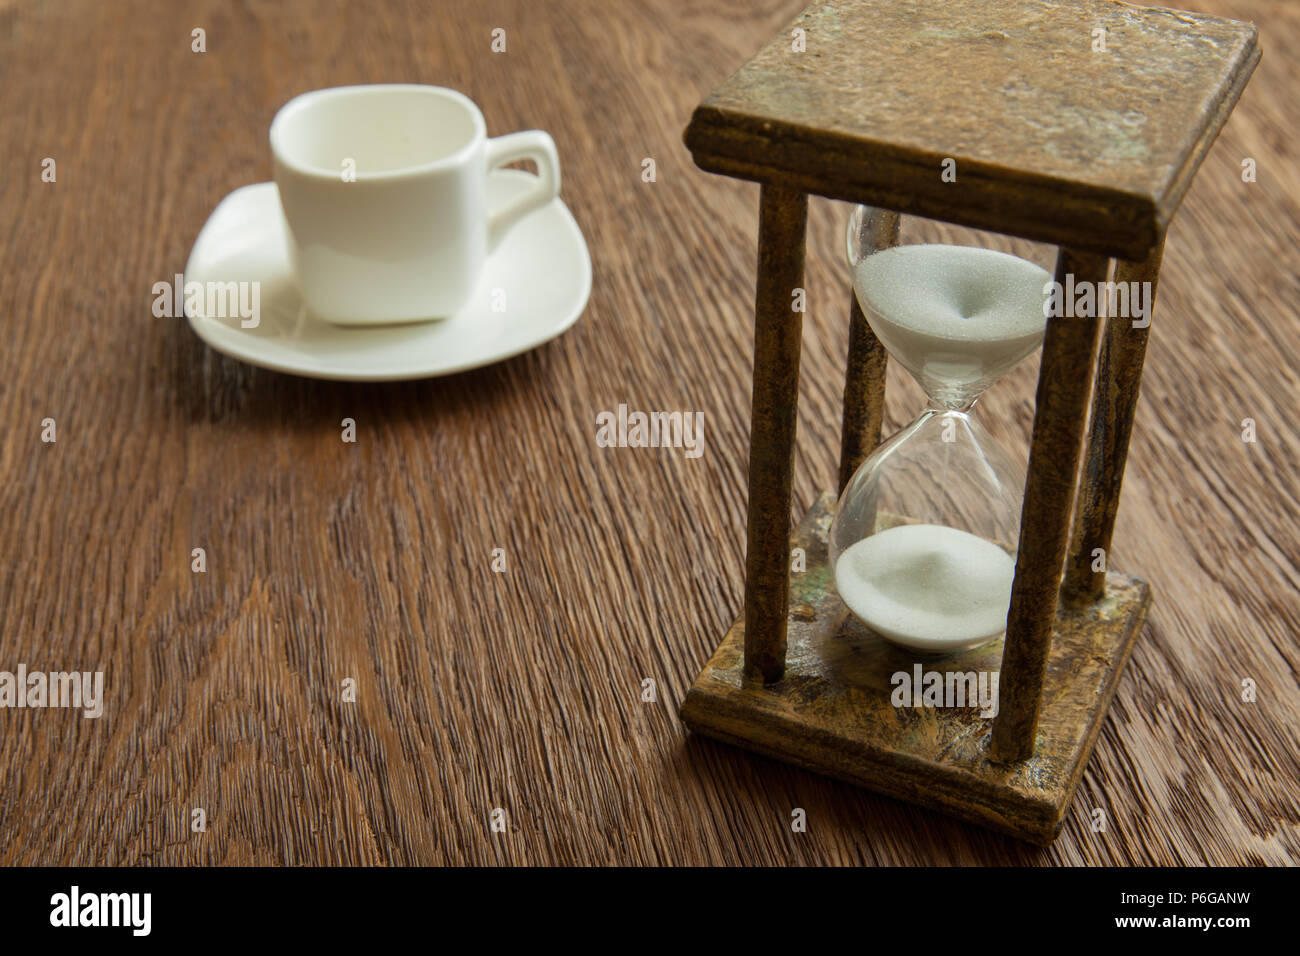 Hourglass on the Oak table as time passing concept for business deadline, urgency and running out of time. - Stock Image